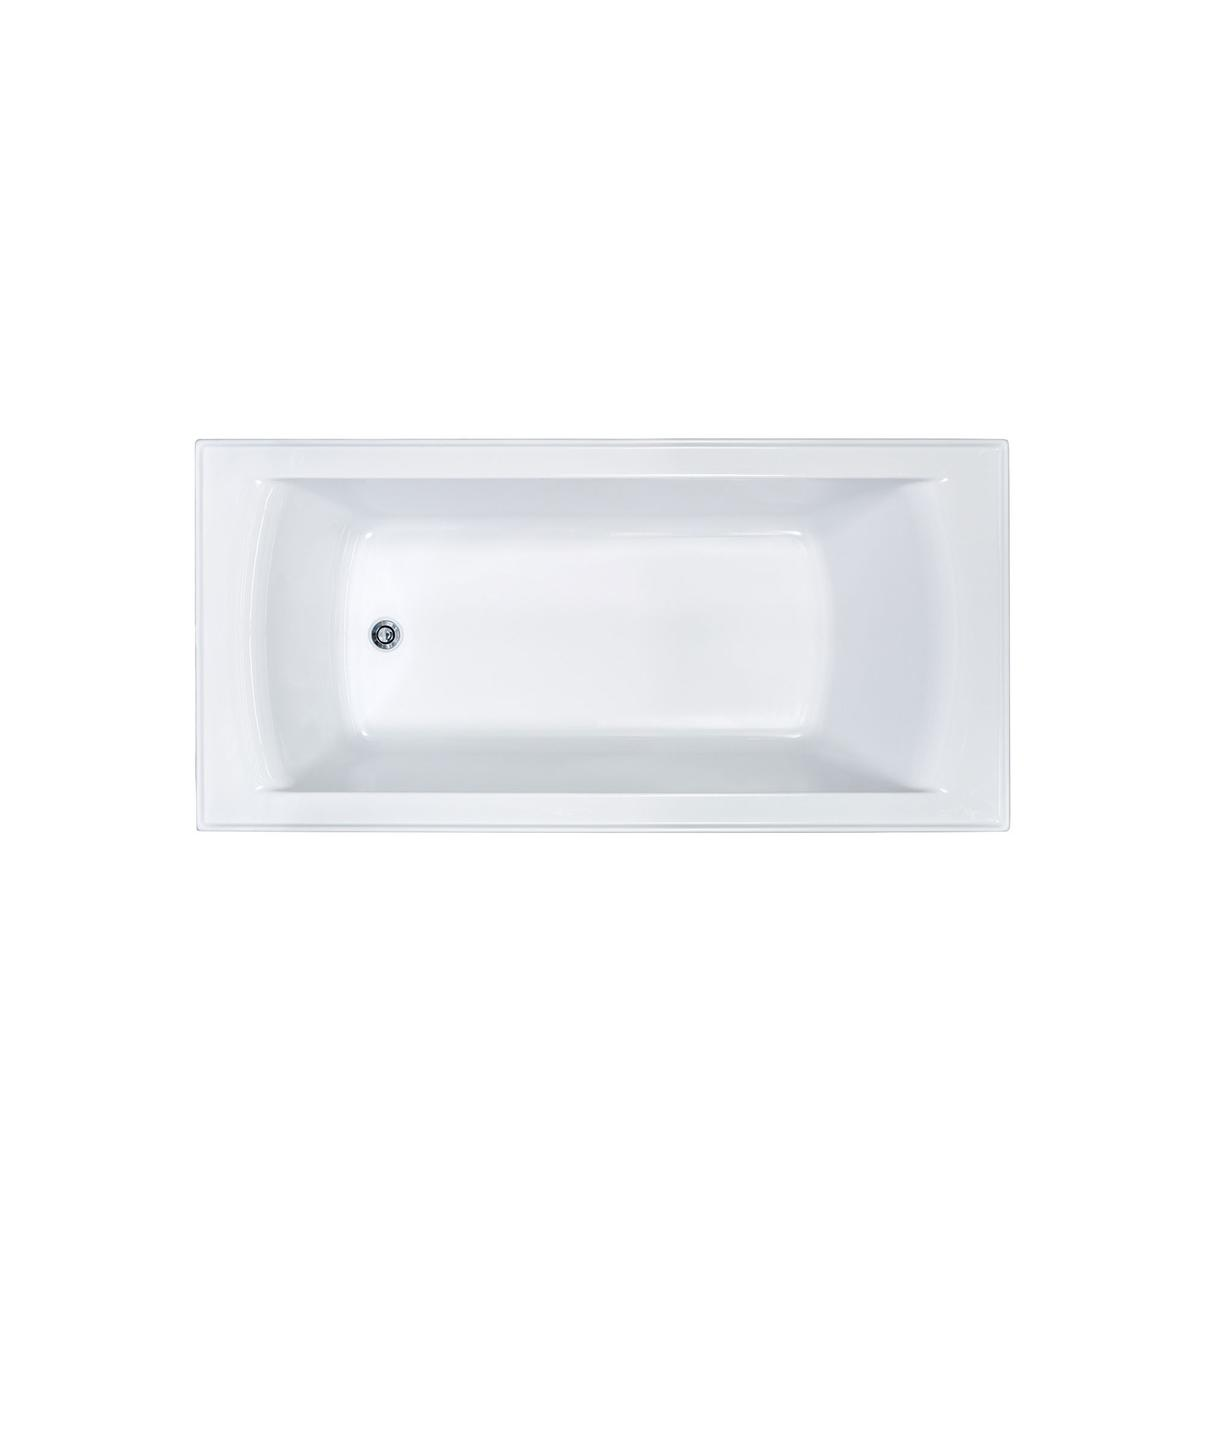 SEIMA CARE 300 TOILET FLUSH PLATE